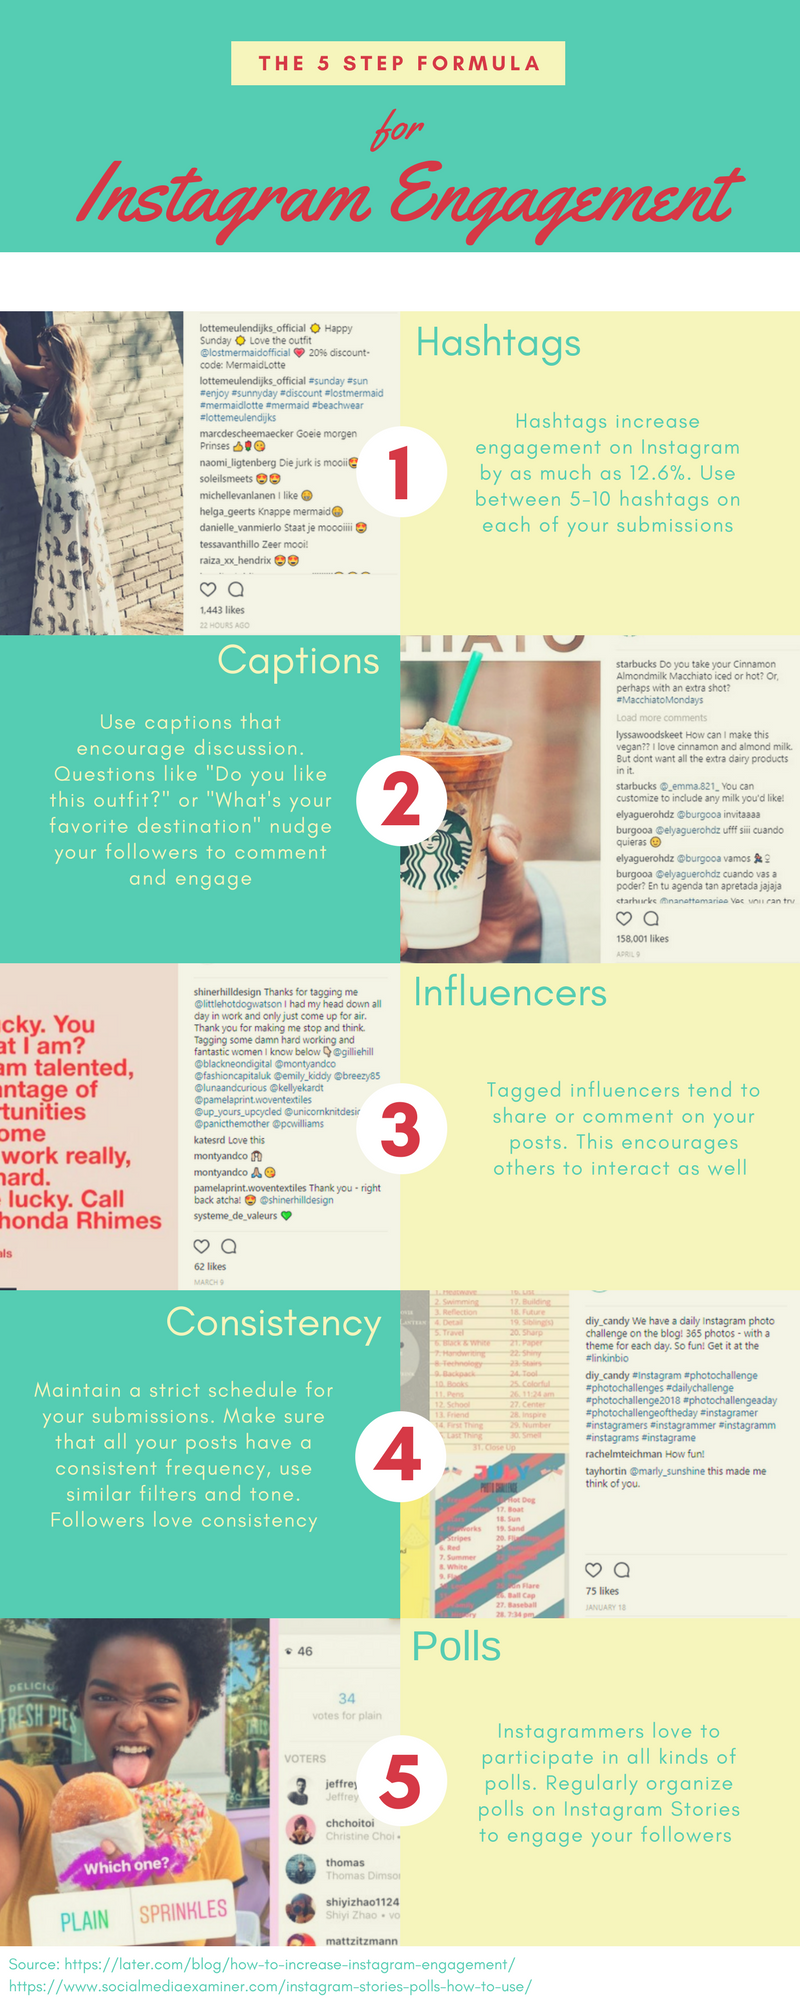 The Five Step Formula To Instagram Engagement